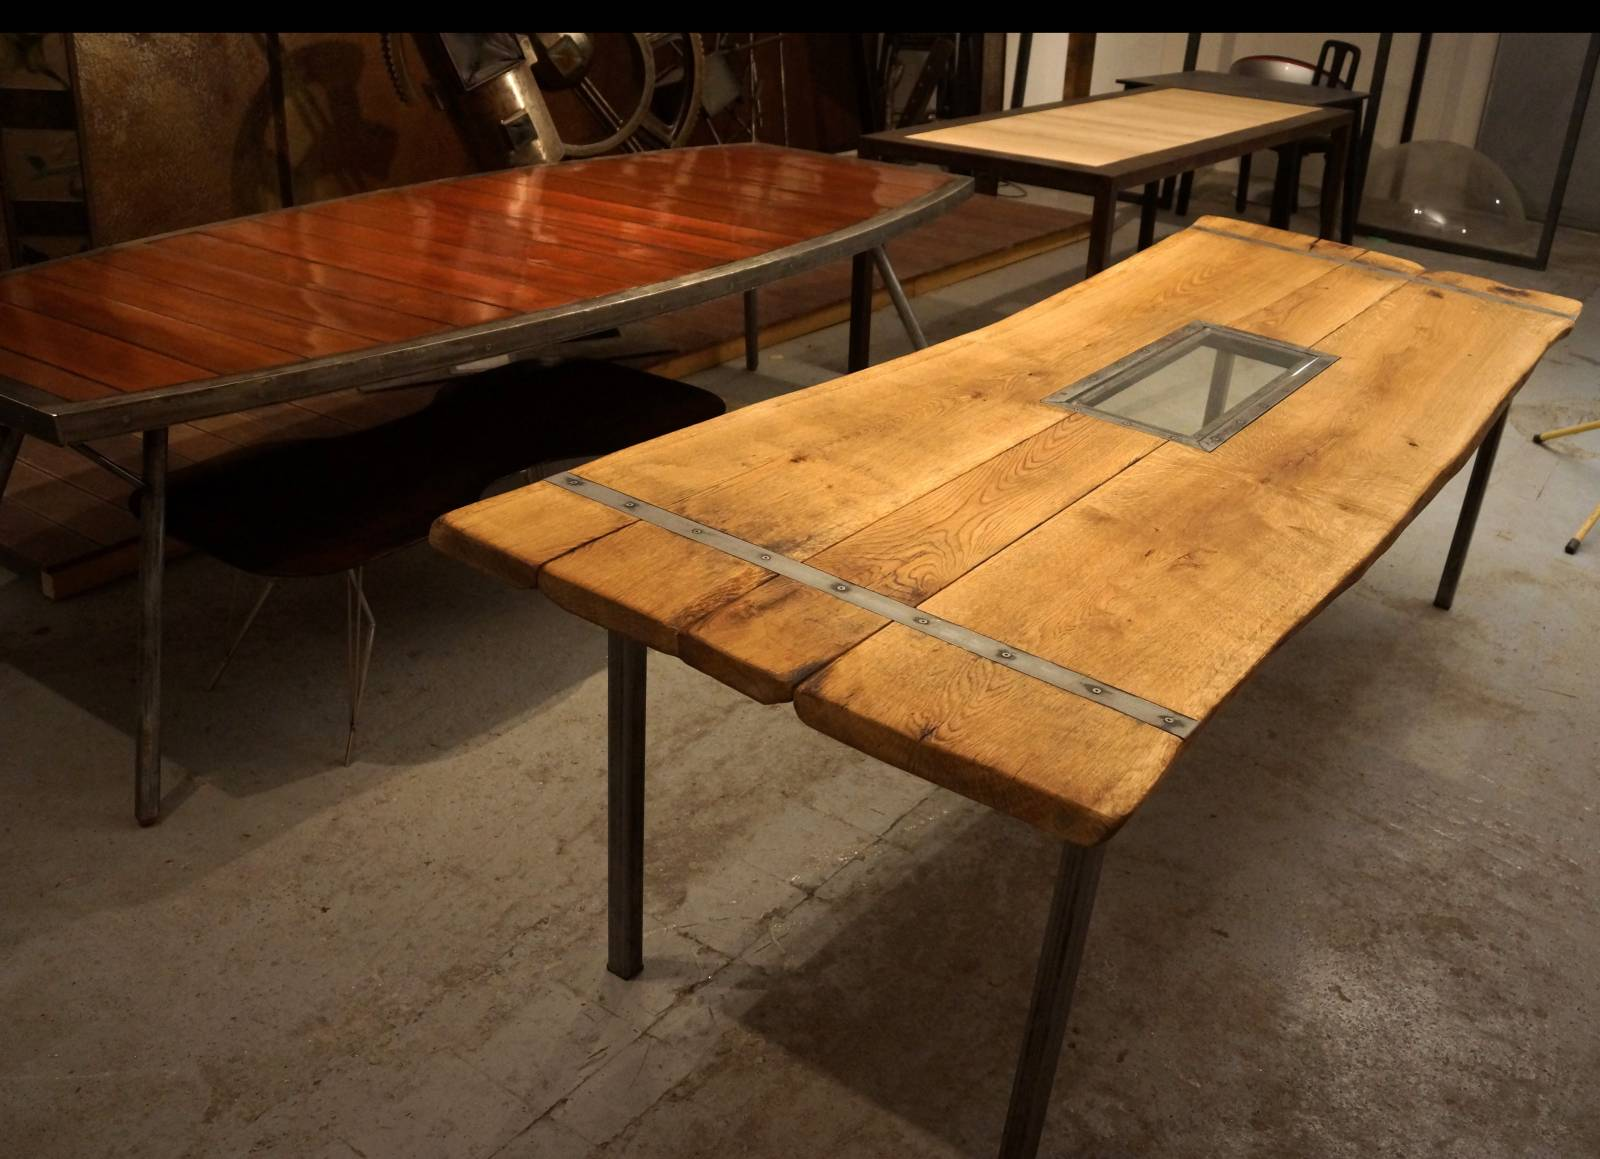 Fabrication de table sur mesure